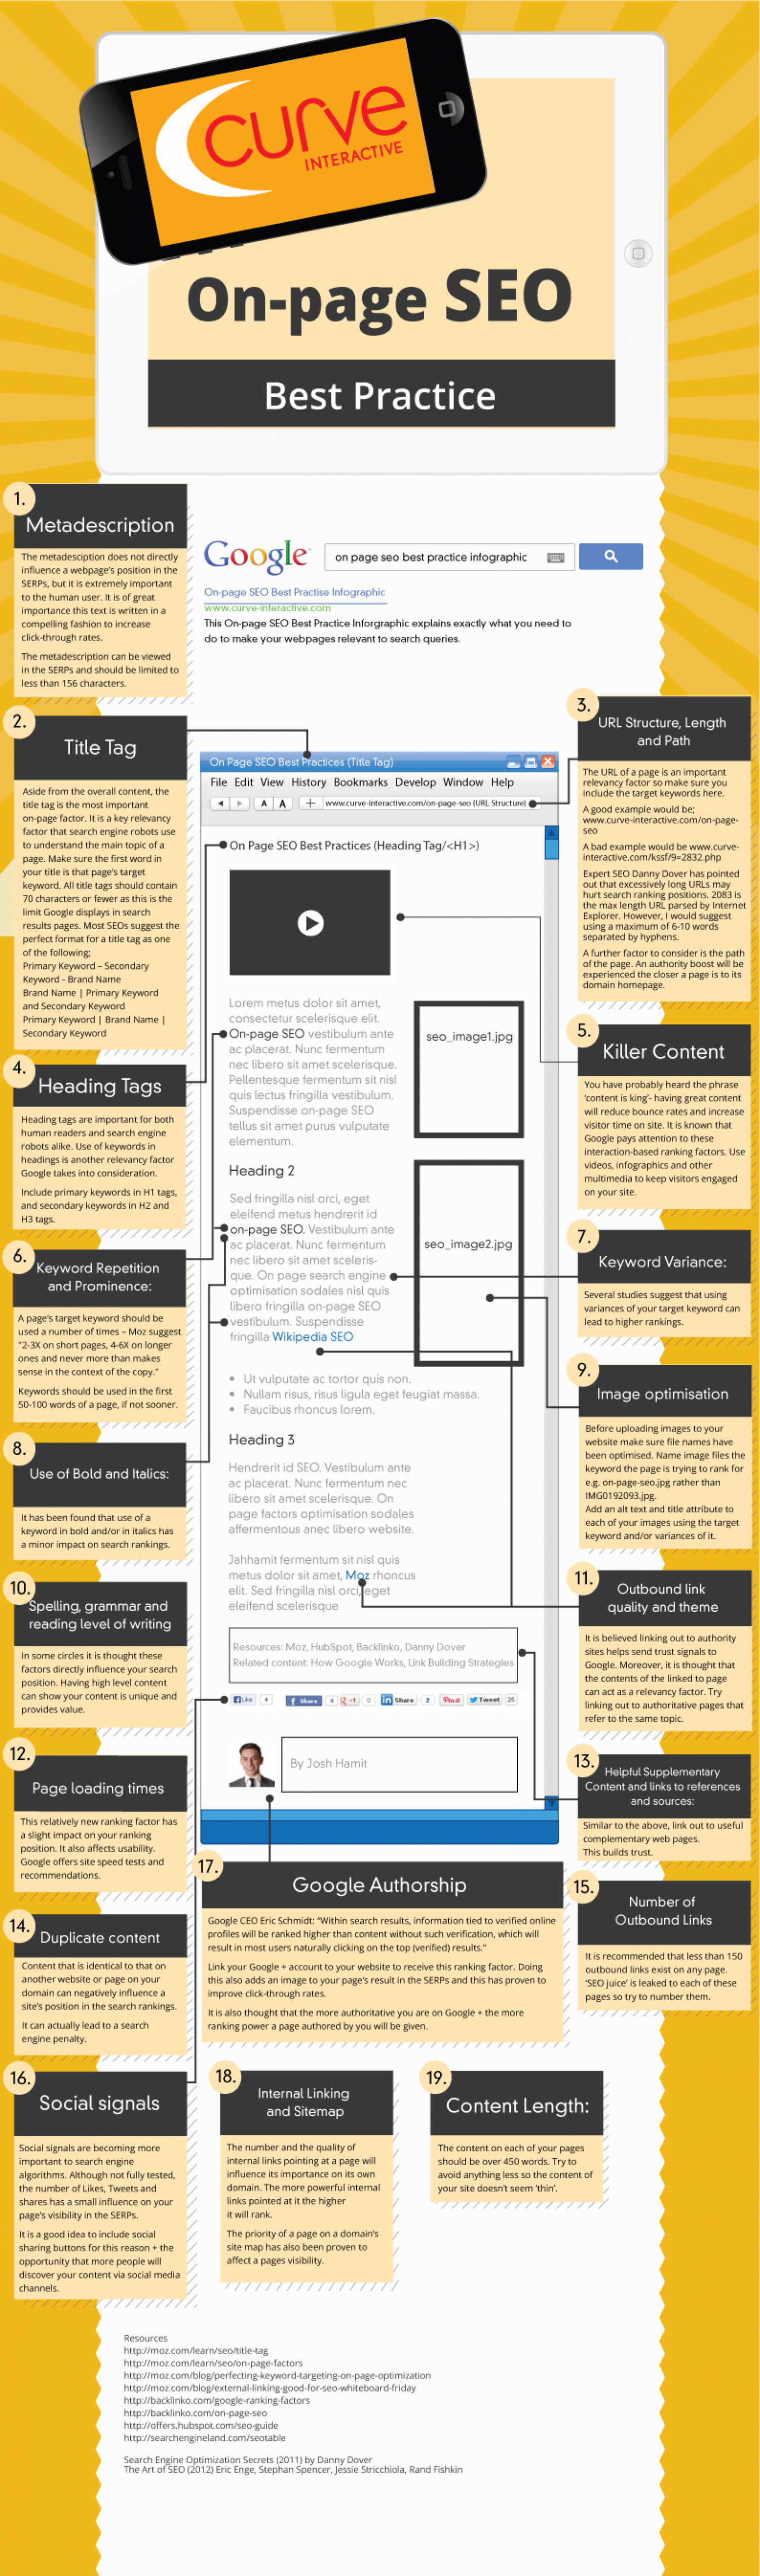 On-Page SEO Best Practices  Infographic